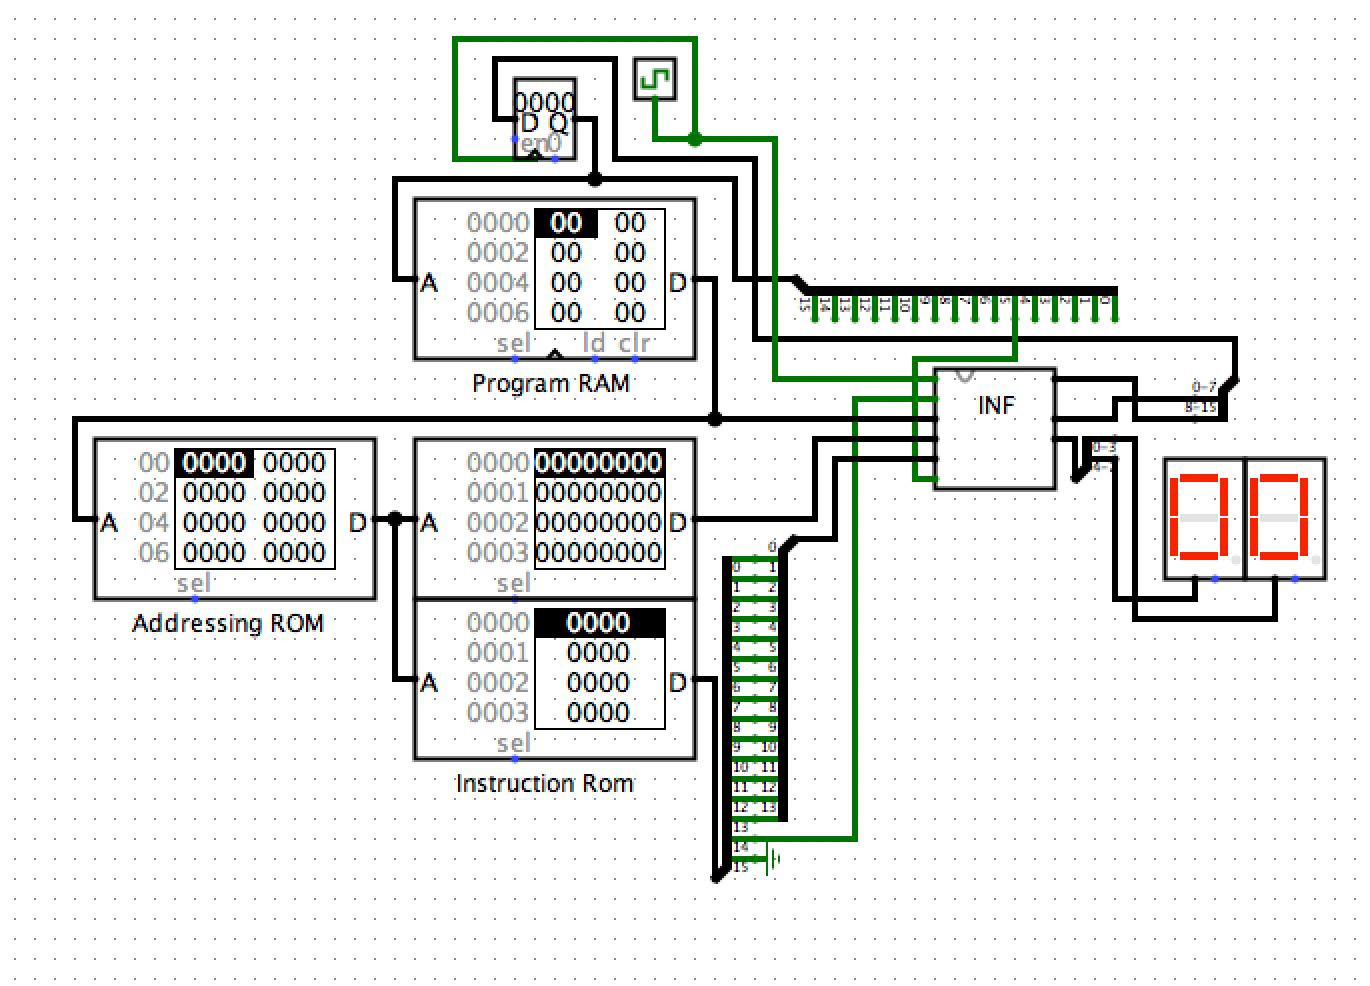 hight resolution of system block diagram